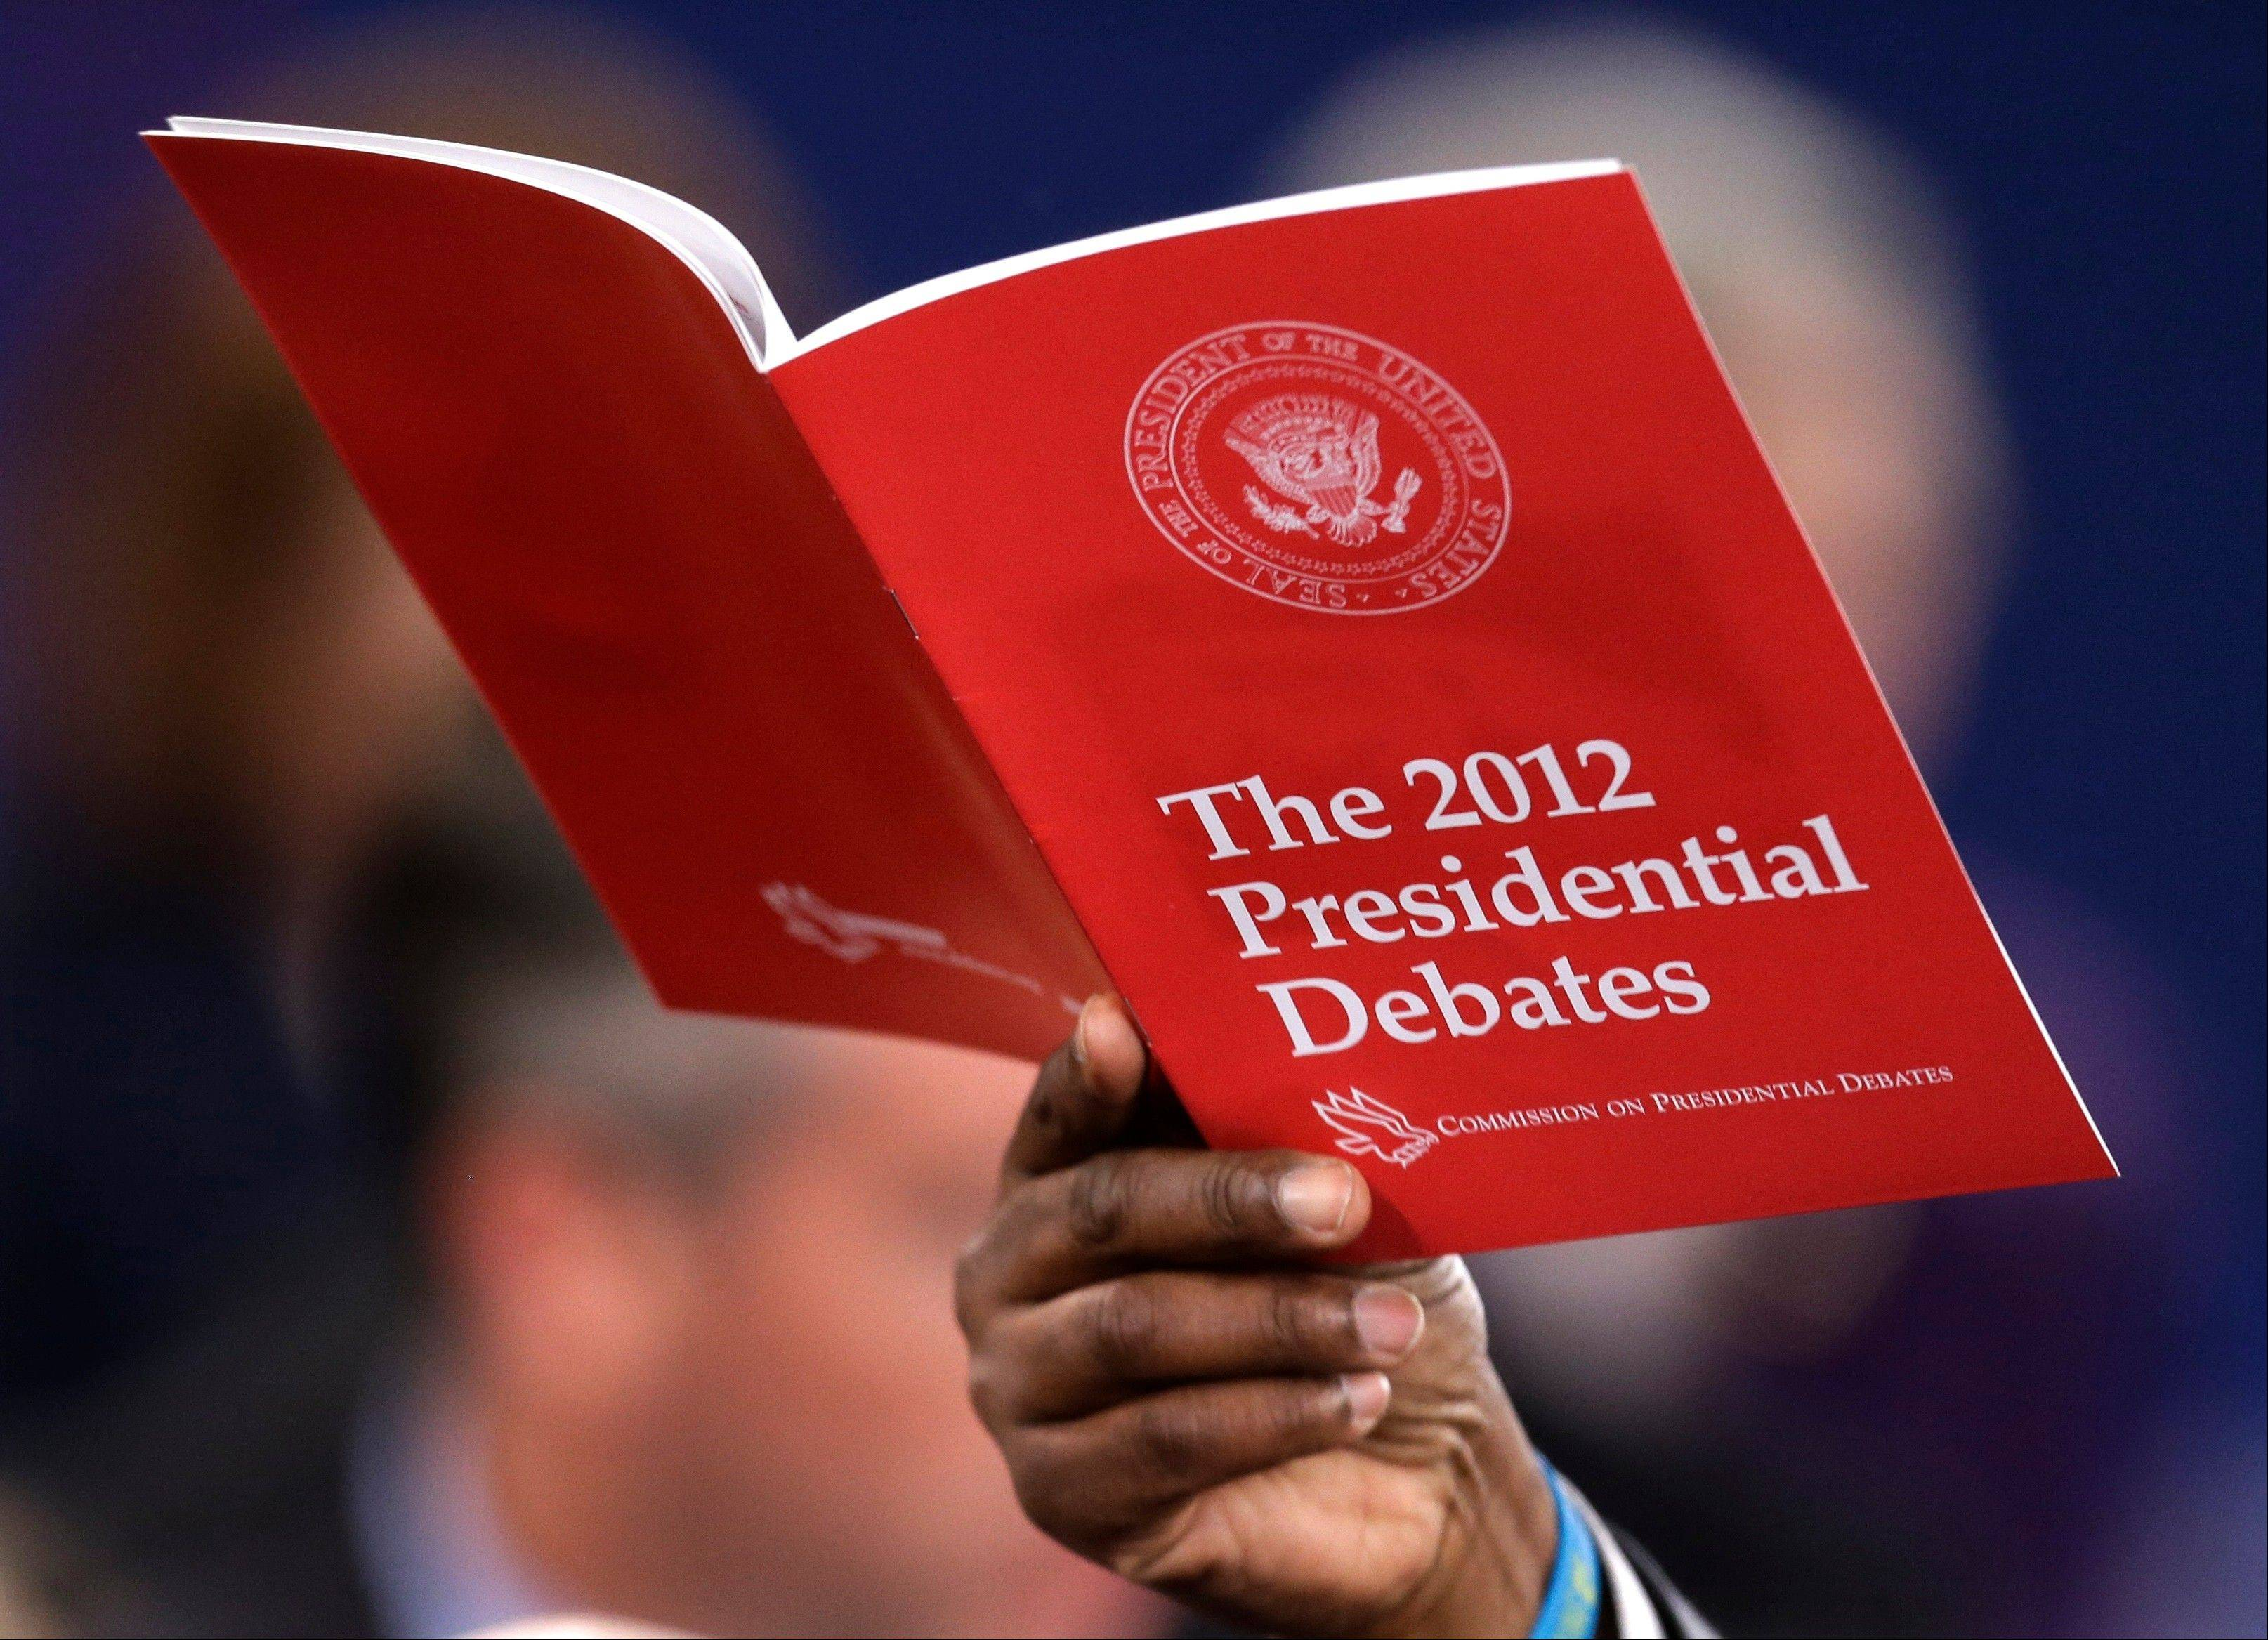 A debate booklet is held up after the second presidential debate between President Barack Obama and Republican presidential nominee Mitt Romney at Hofstra University Tuesday in Hempstead, N.Y.